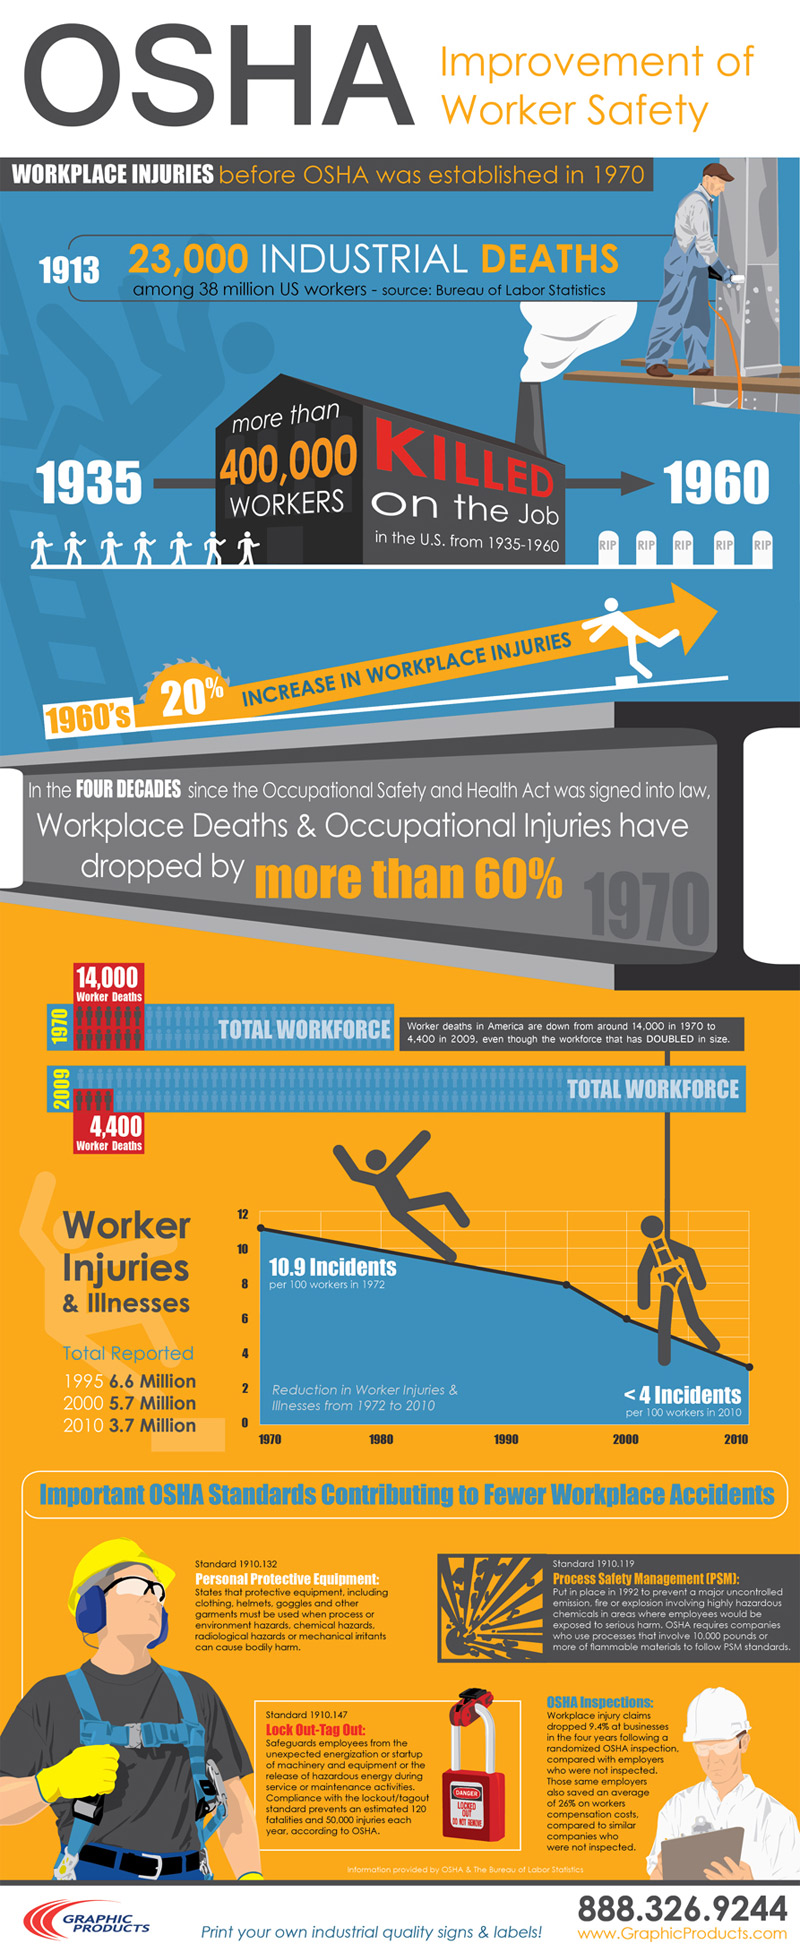 Workplace Safety Infographic 155 Catchy Safety Slogans for the Workplace